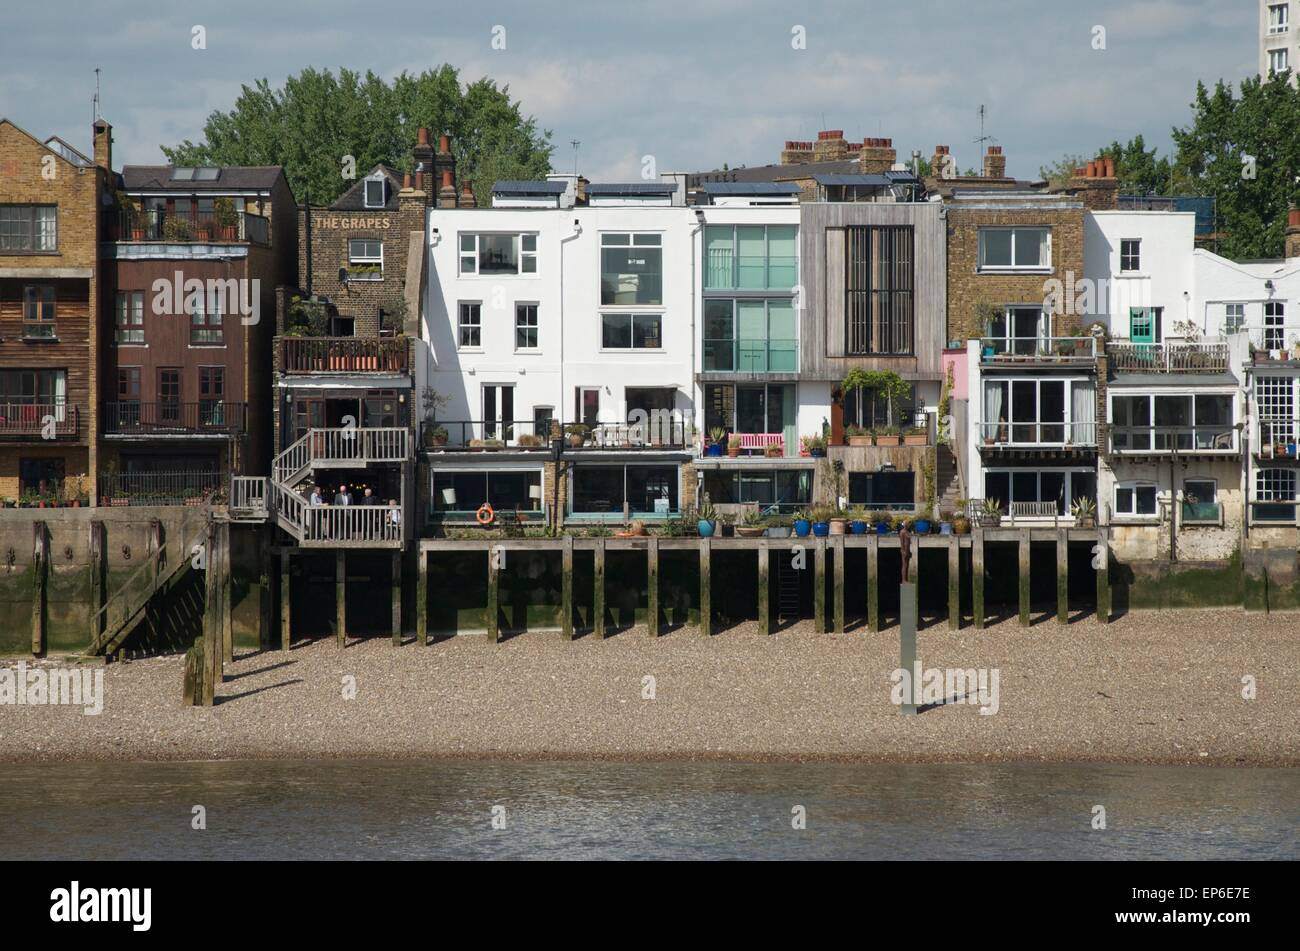 The Grapes Pub and flats, Limehouse, London, England, UK. An Antony Gormley sculpture can be seen on a plinth on - Stock Image